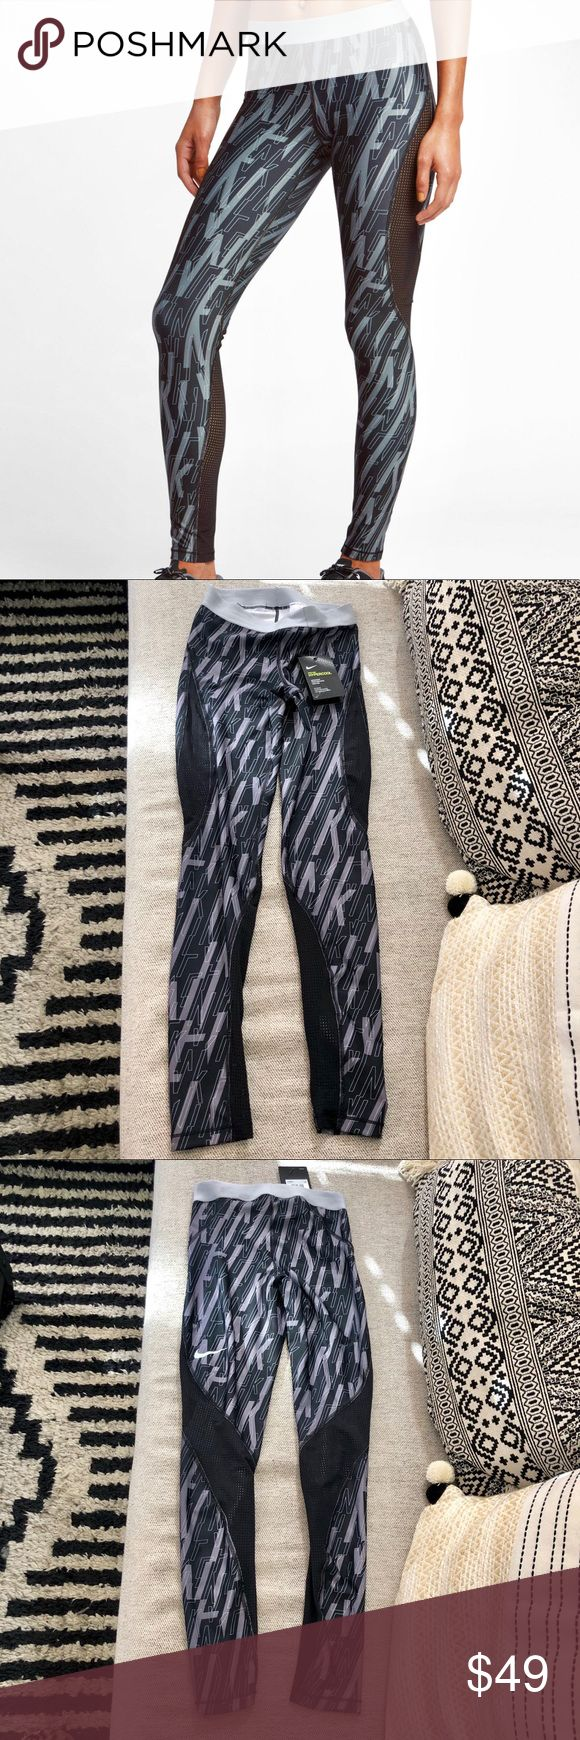 Nike Pro Leggings Hypercool, BRAND NEW, NEVER USED WITH TAGS Nike Pants Leggings